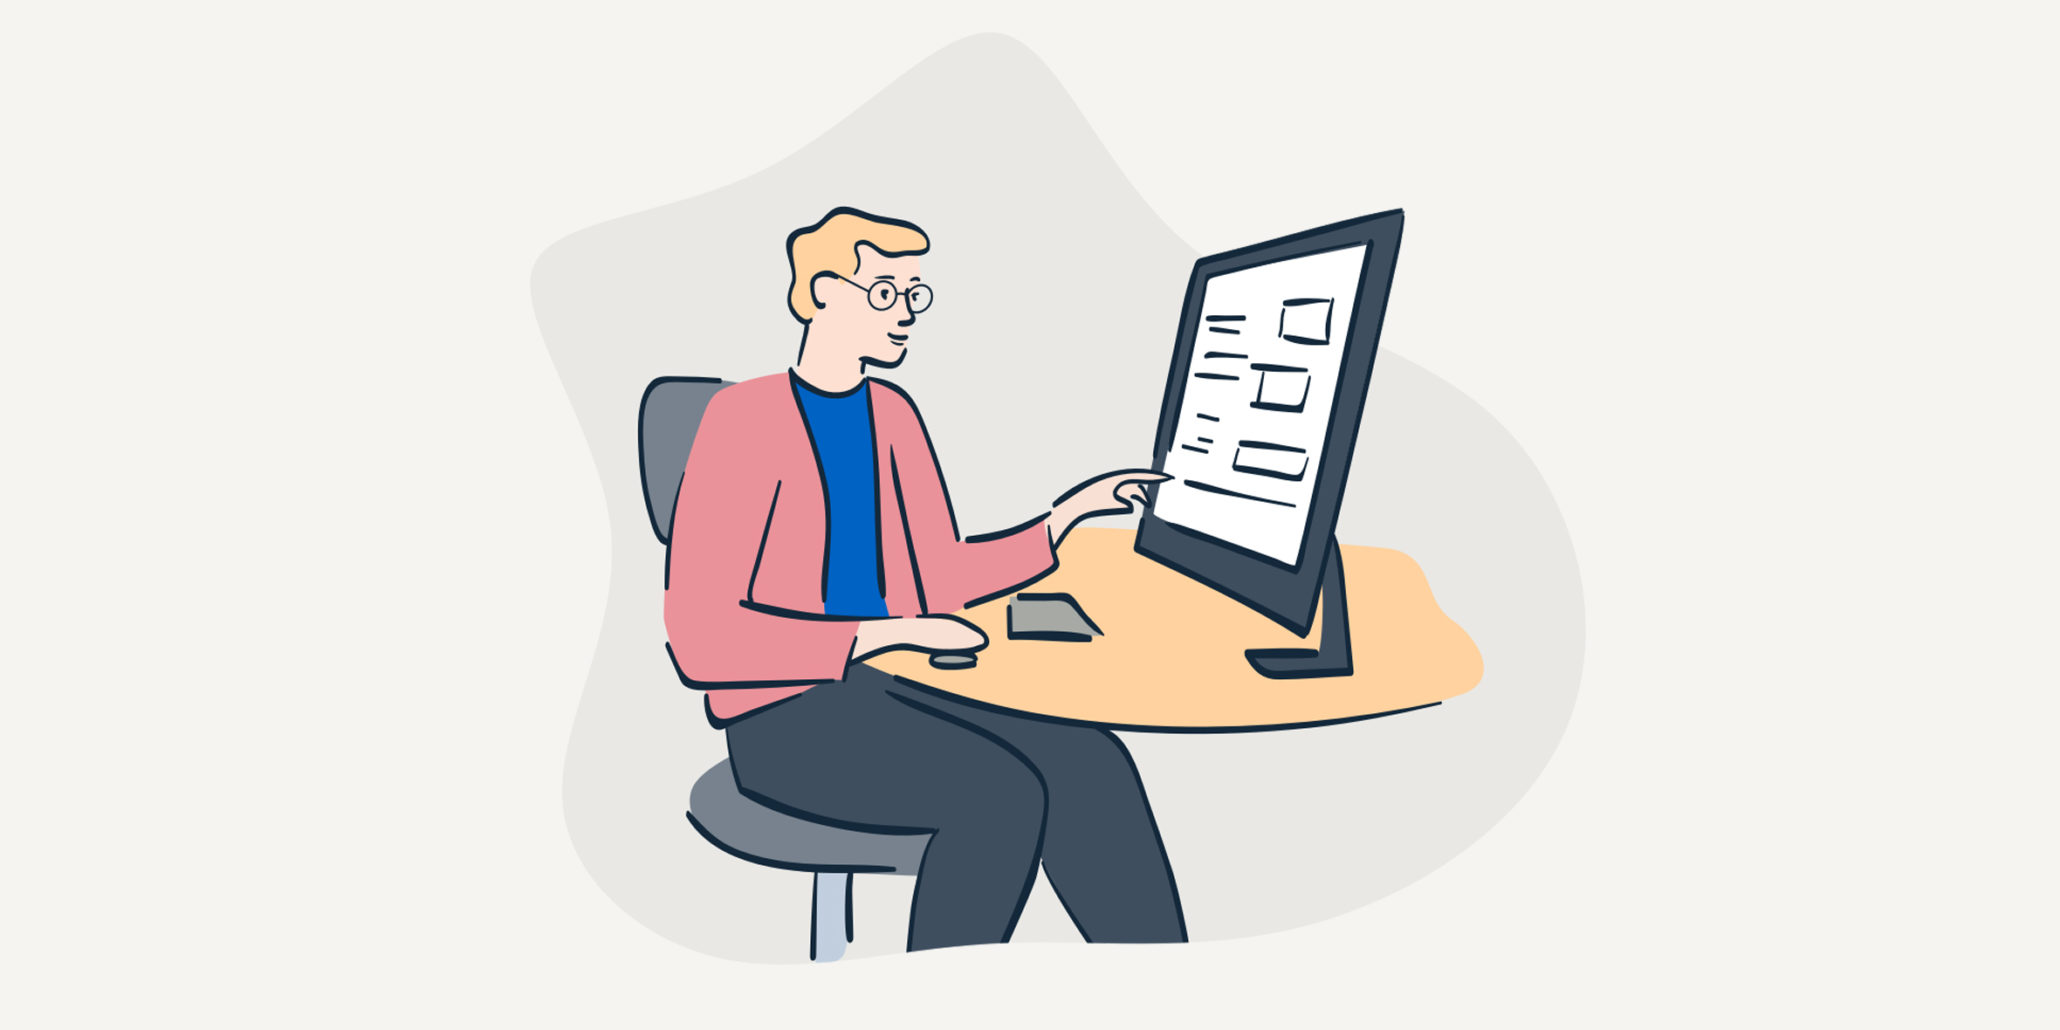 Illustration of person sitting at computer